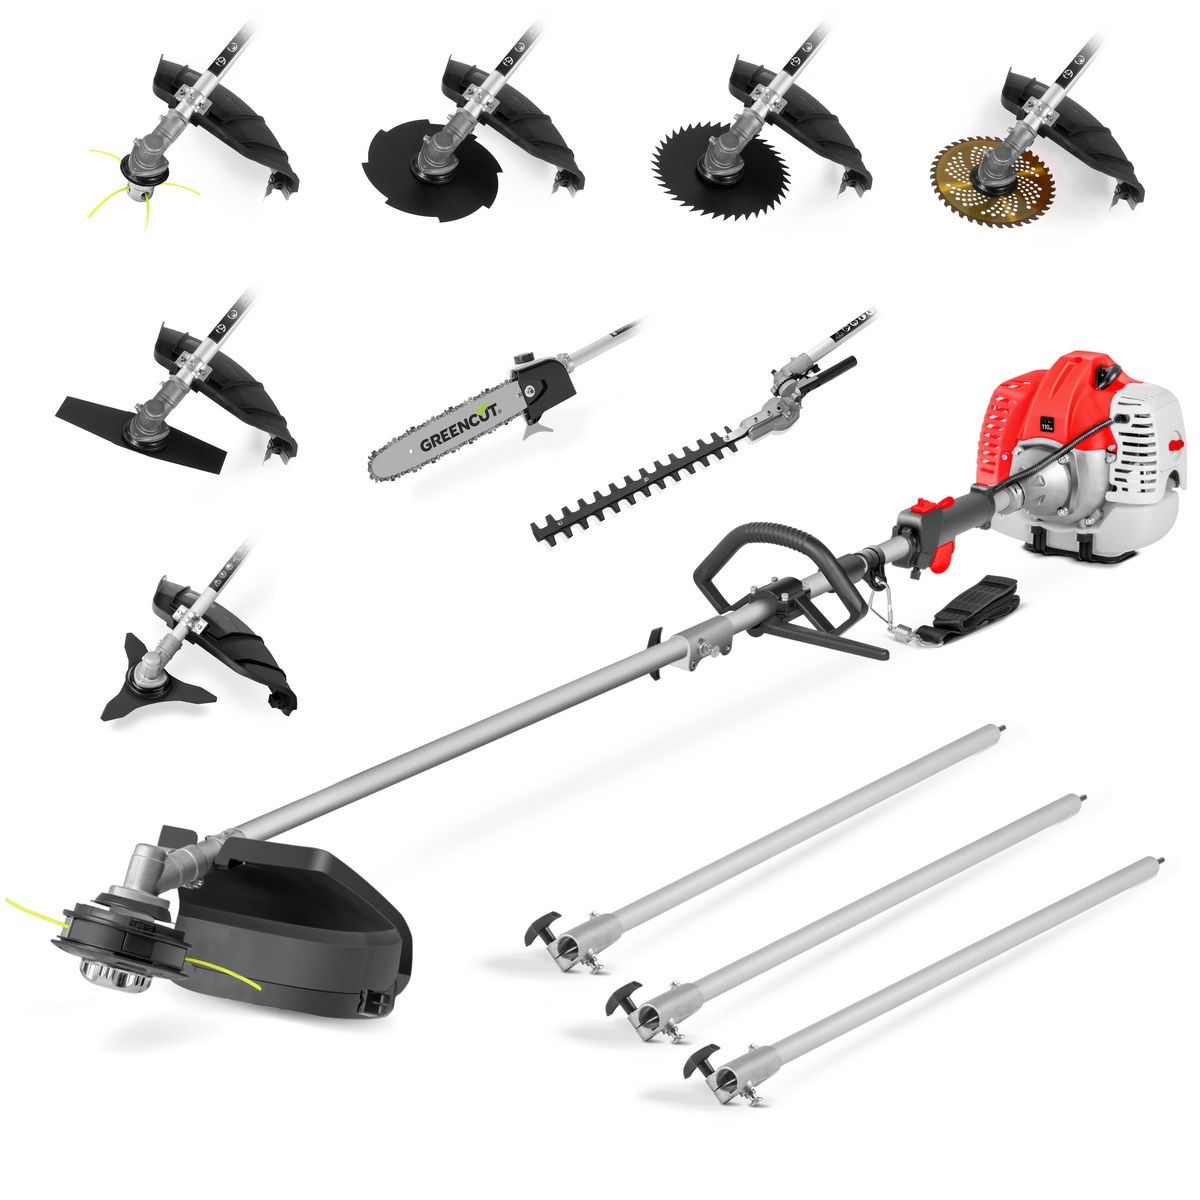 Tool Multifunction 9 In 1 GREENCUT, Gasoline 65cc, 9 Accessories, Brushcutter Function + Mower + Hedge